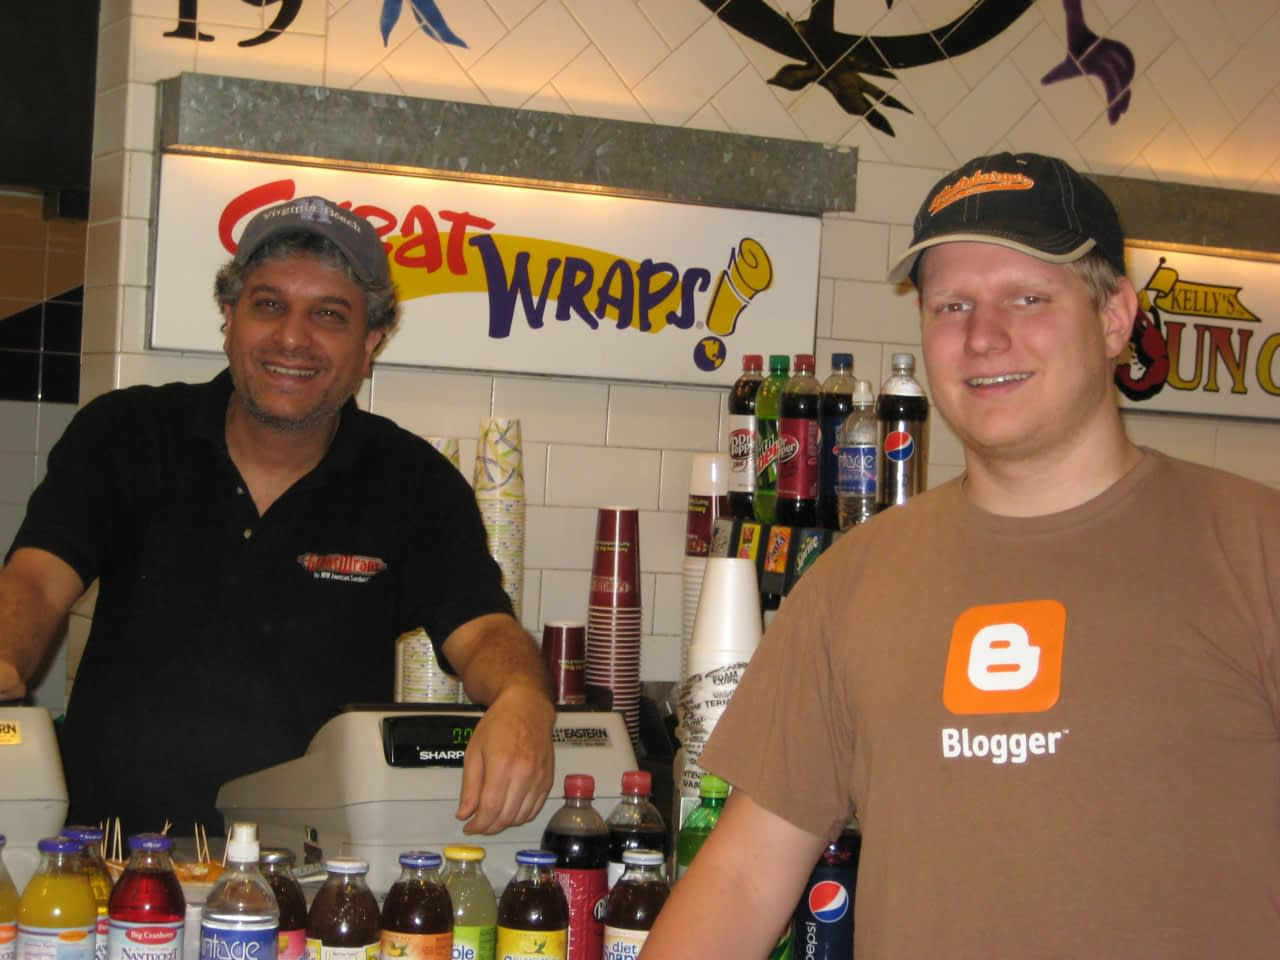 Pat with the manager of Great Wraps